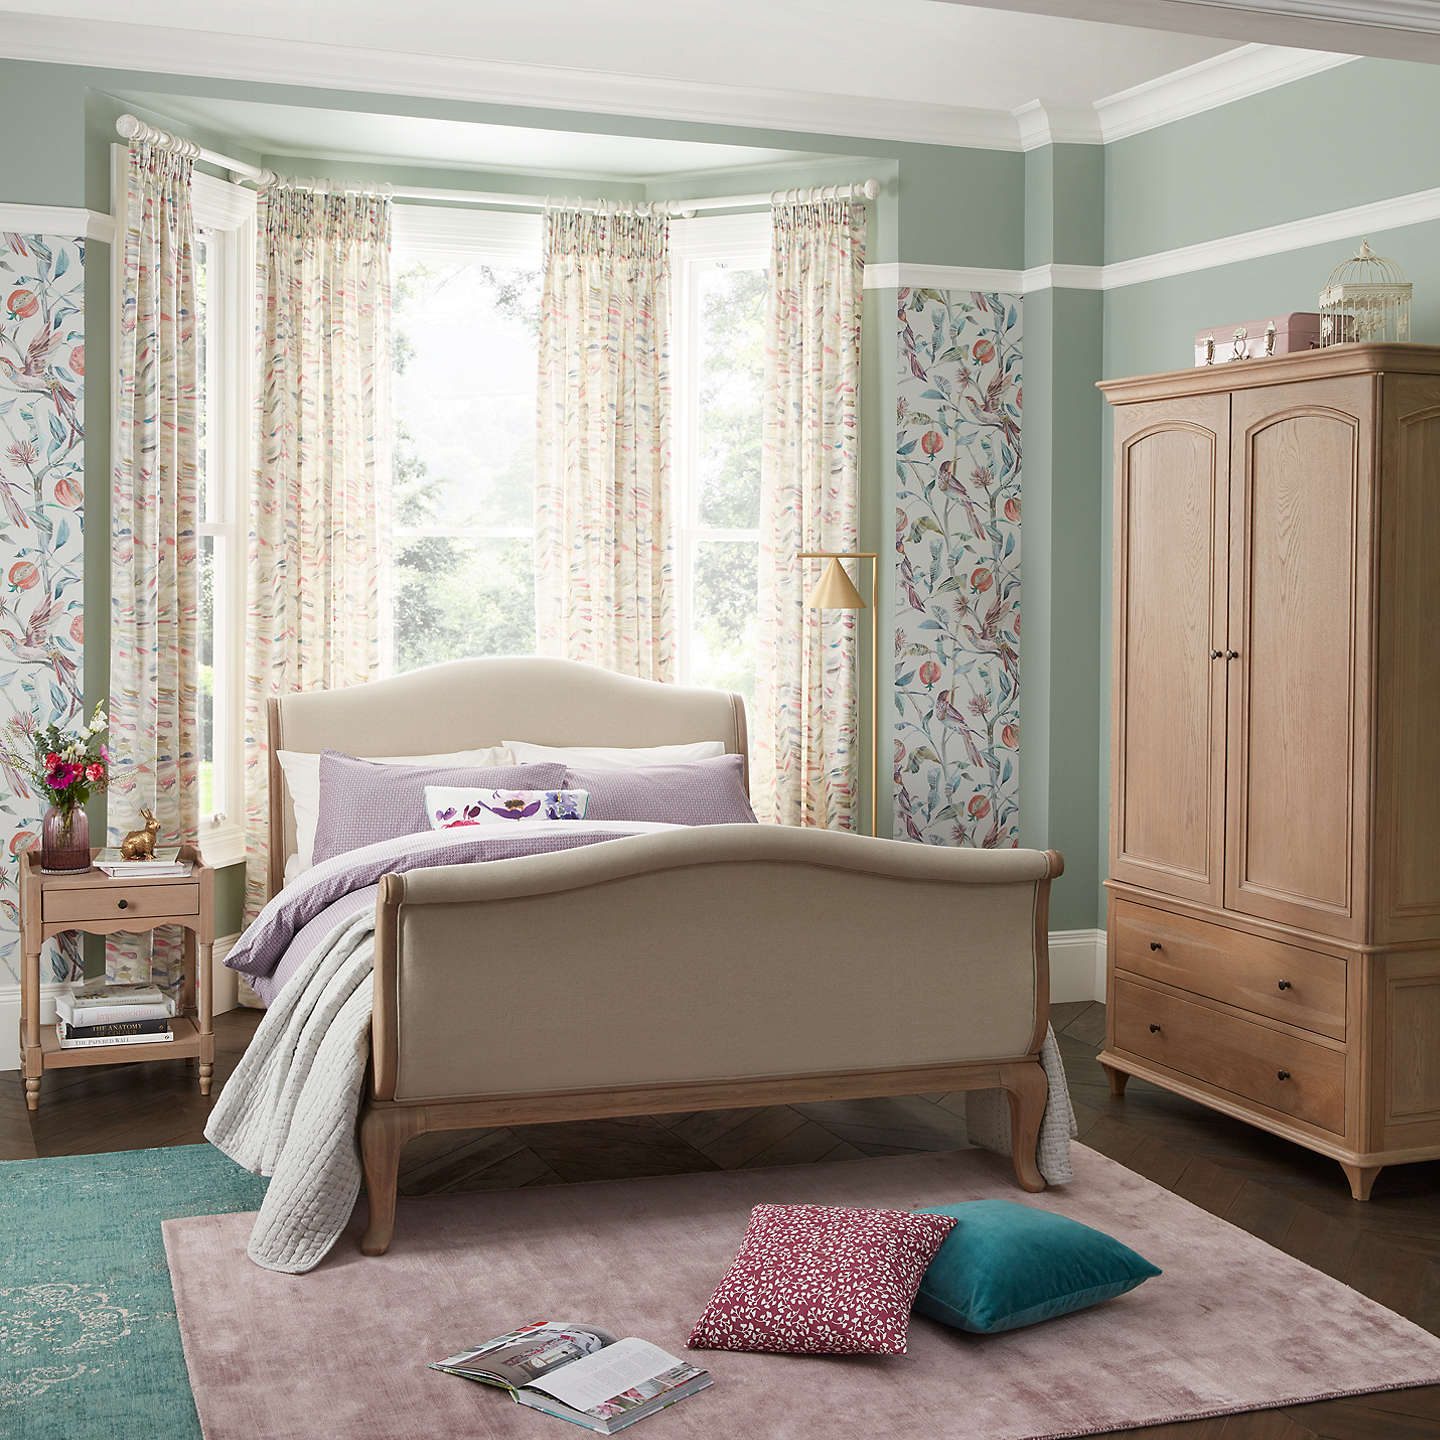 frame new teau b lit bateau brodsworth bed the french solid mahogany sleigh kingsize product copy shack